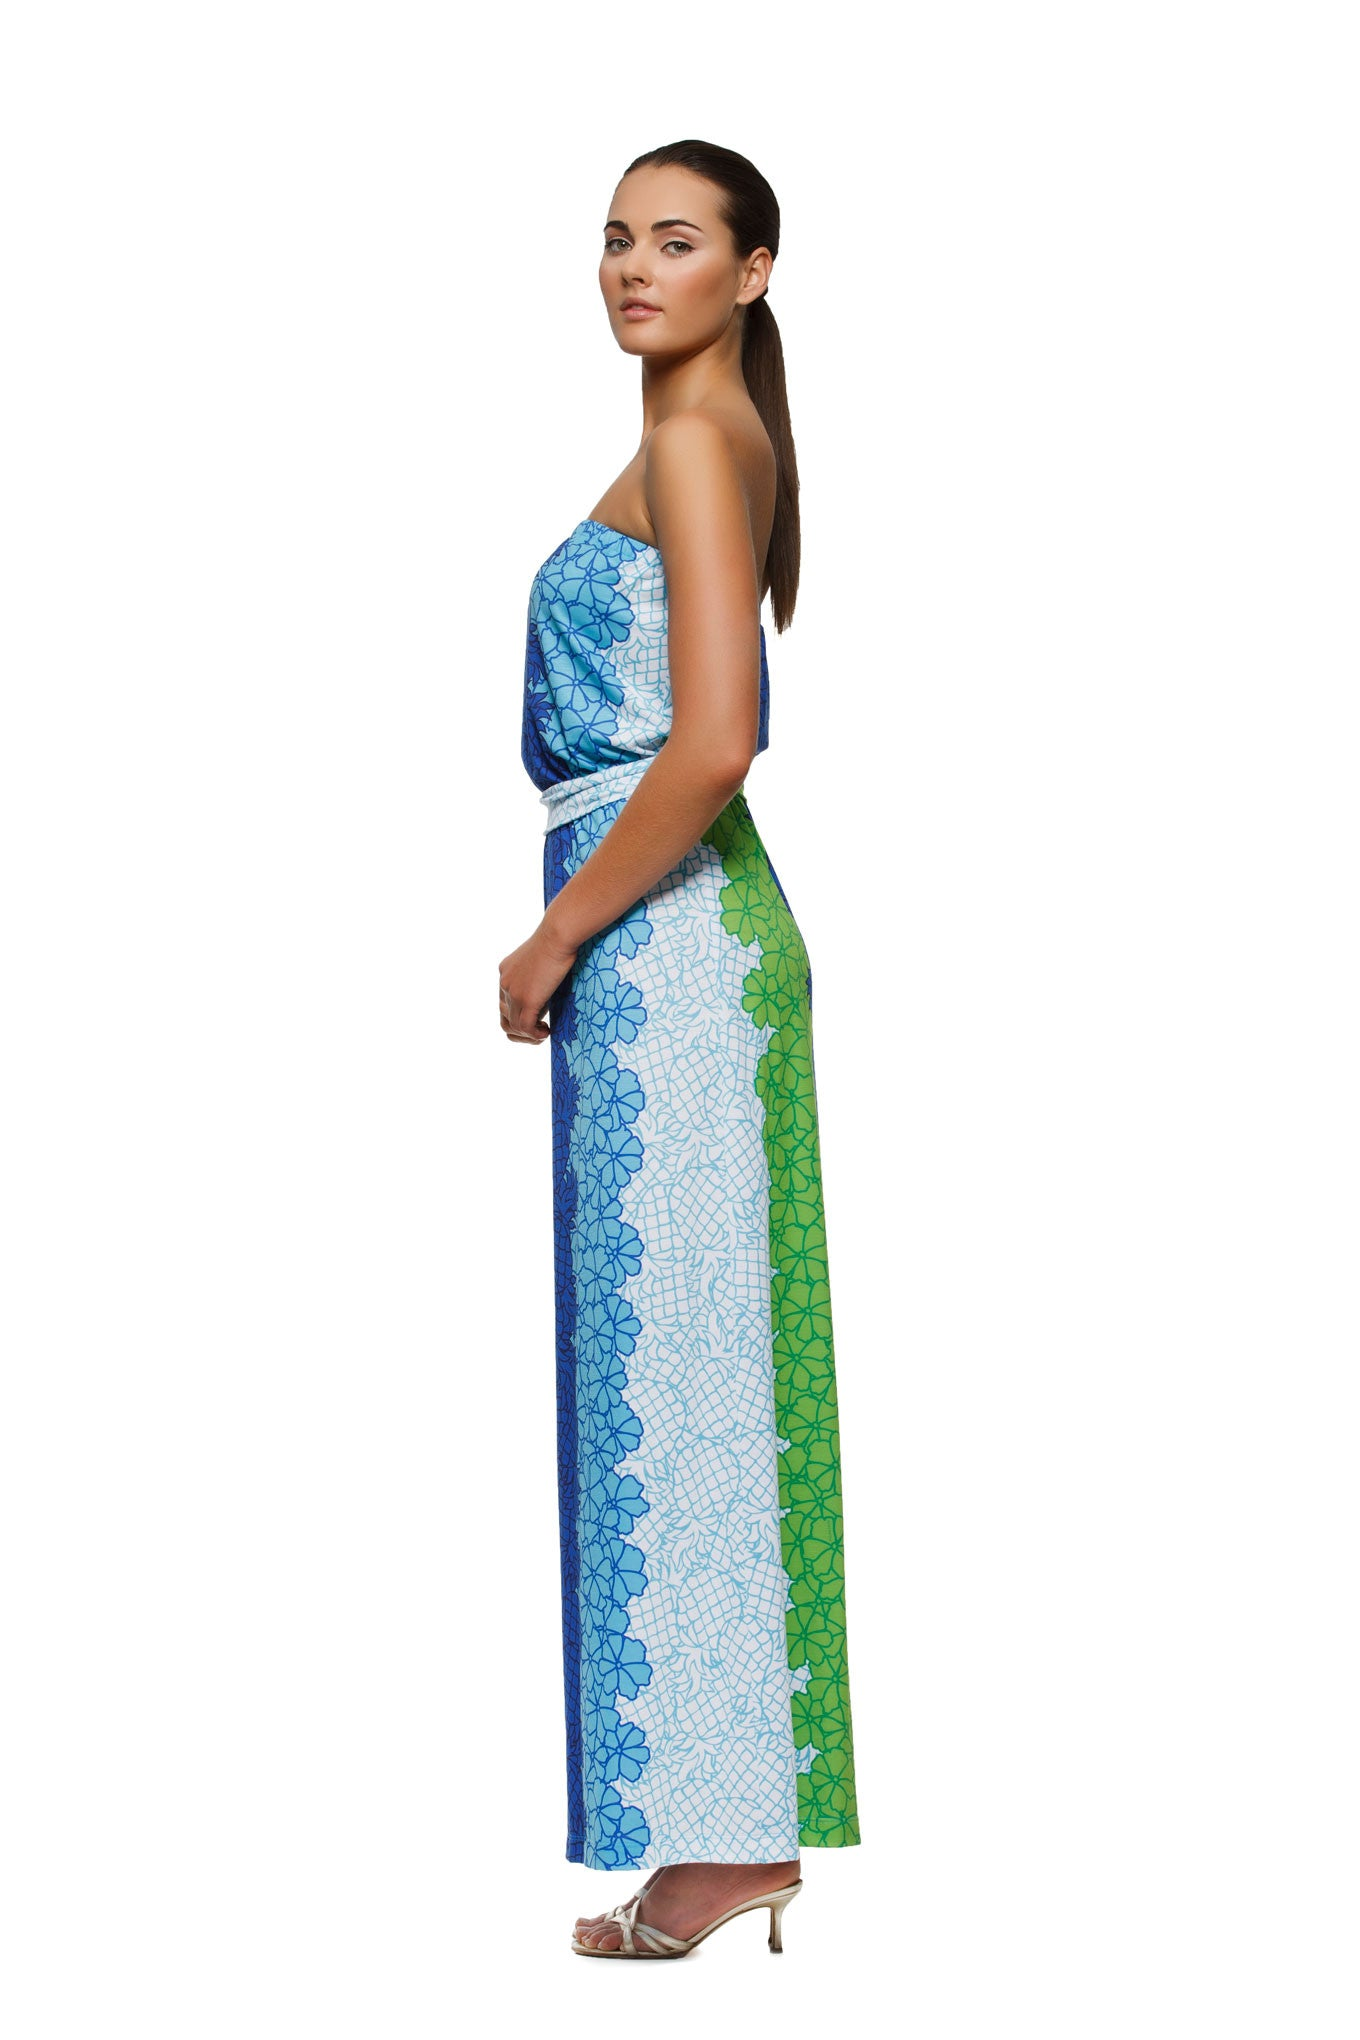 Remy womens strapless maxi dress with matching belt  in pineapple print by Rulon Reed side view